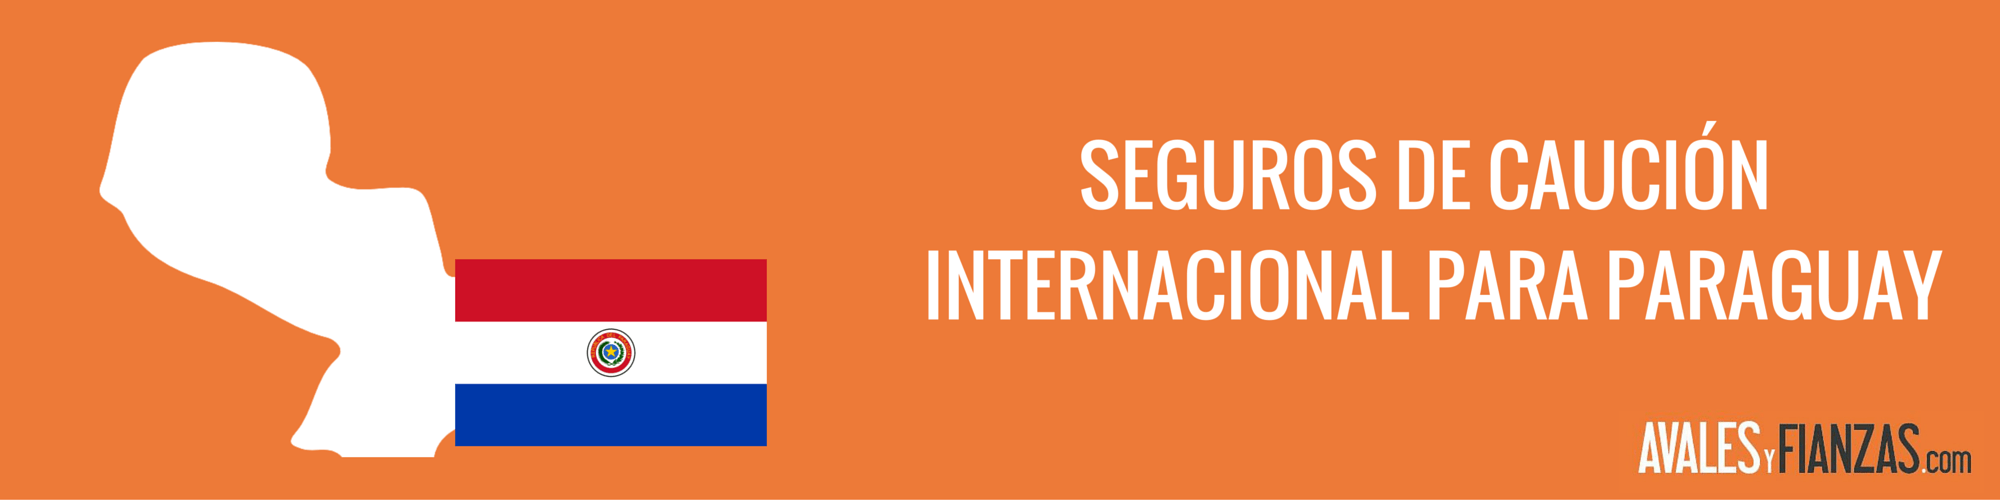 Aval para Paraguay